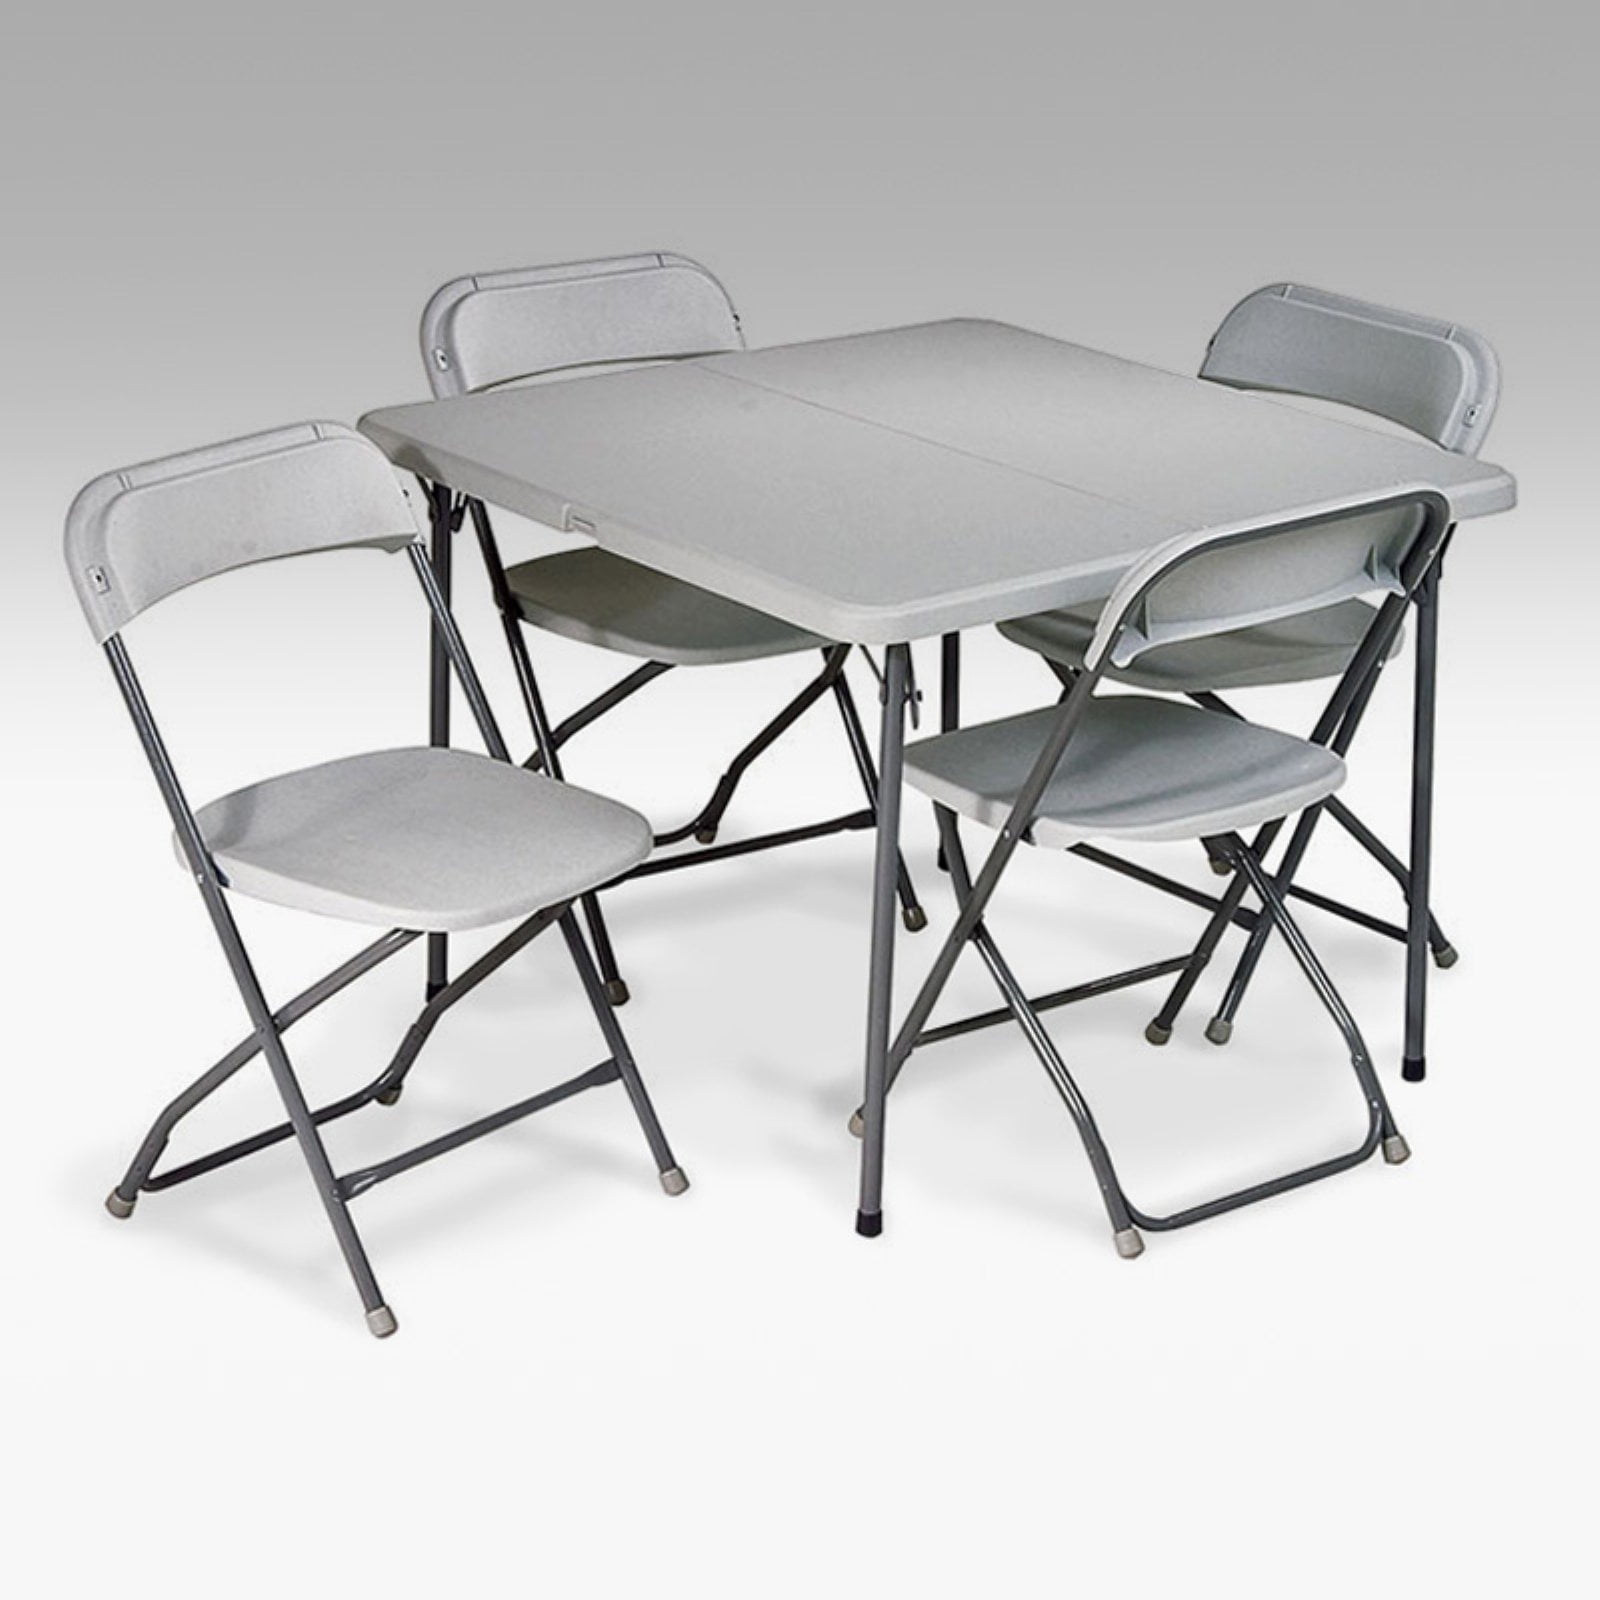 Piece Folding Table And Chair Set Lightweight CommercialGrade - Commercial table and chair sets